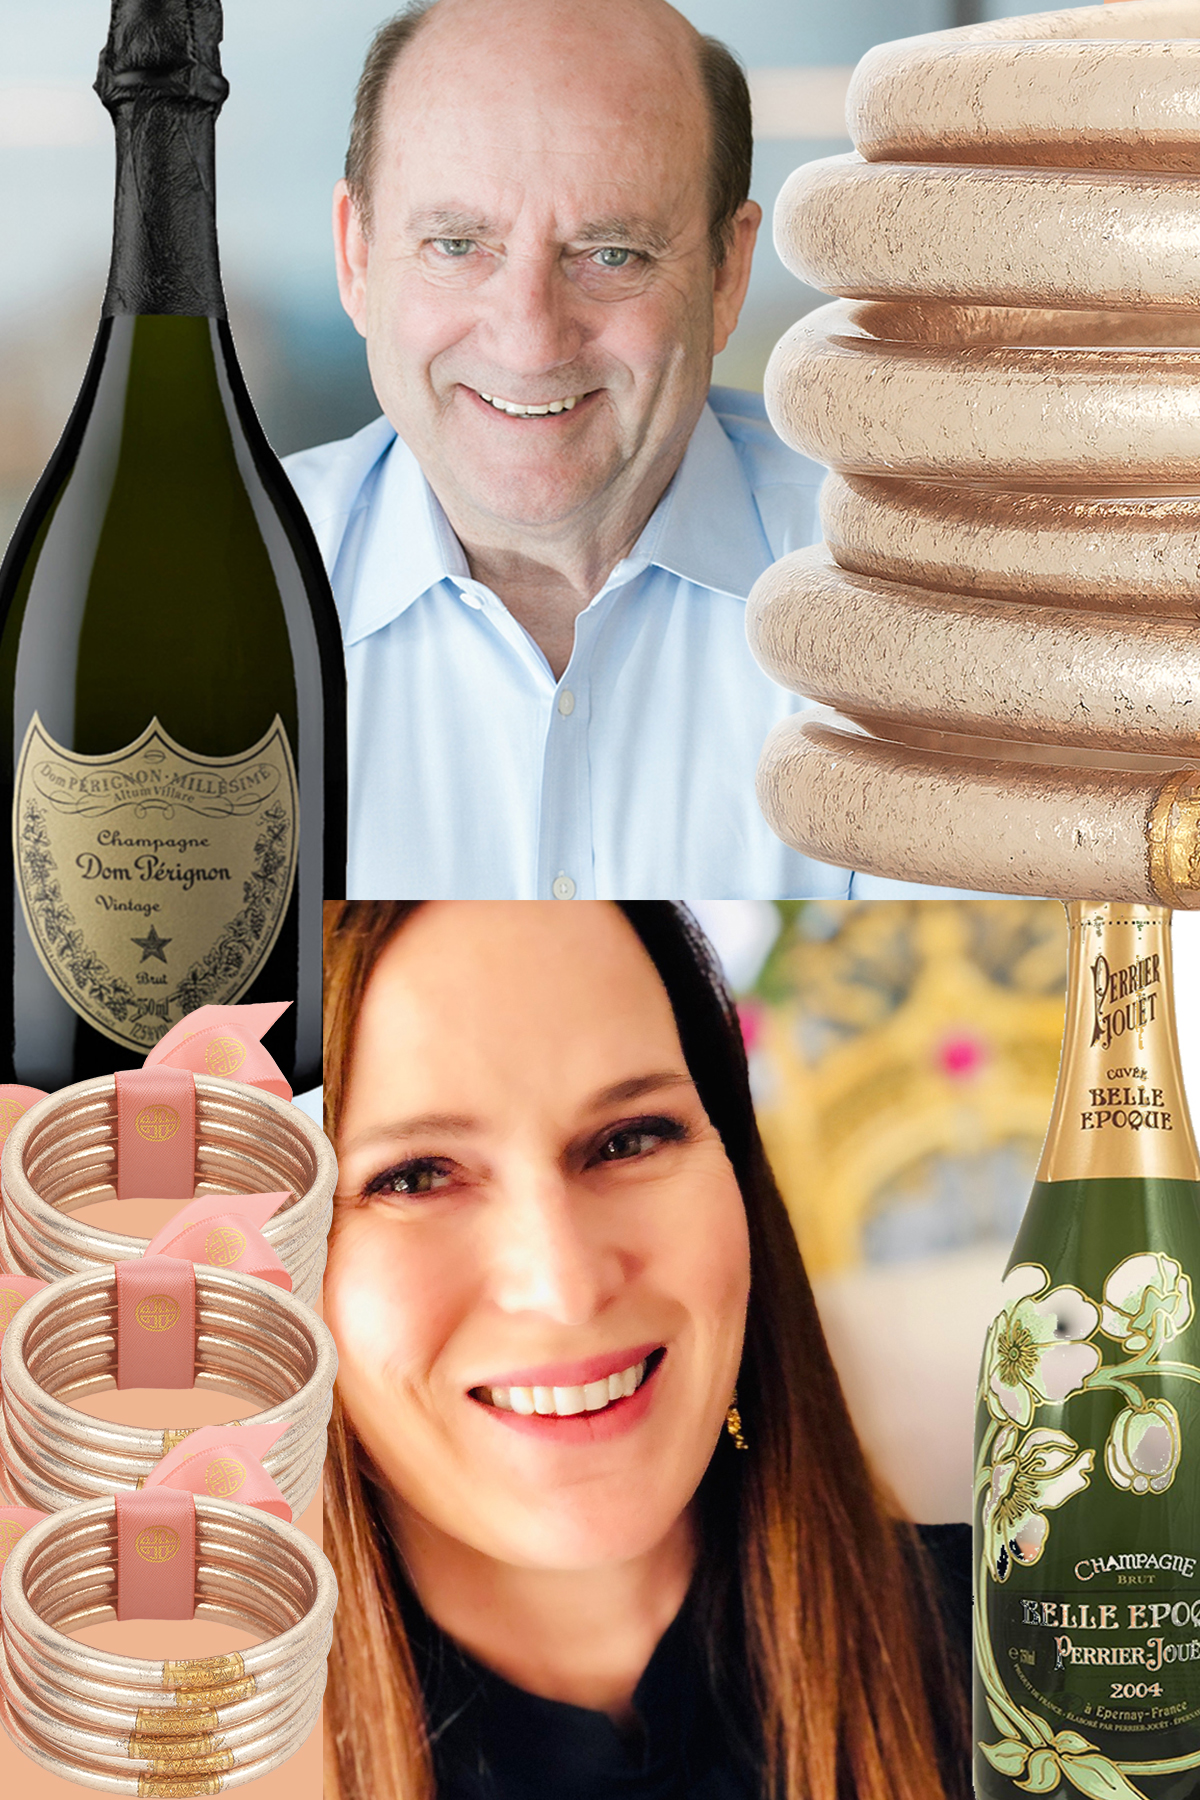 THE CHAIRMAN LIKES DOM & MOLLY LOVES PERRIER-JOUET